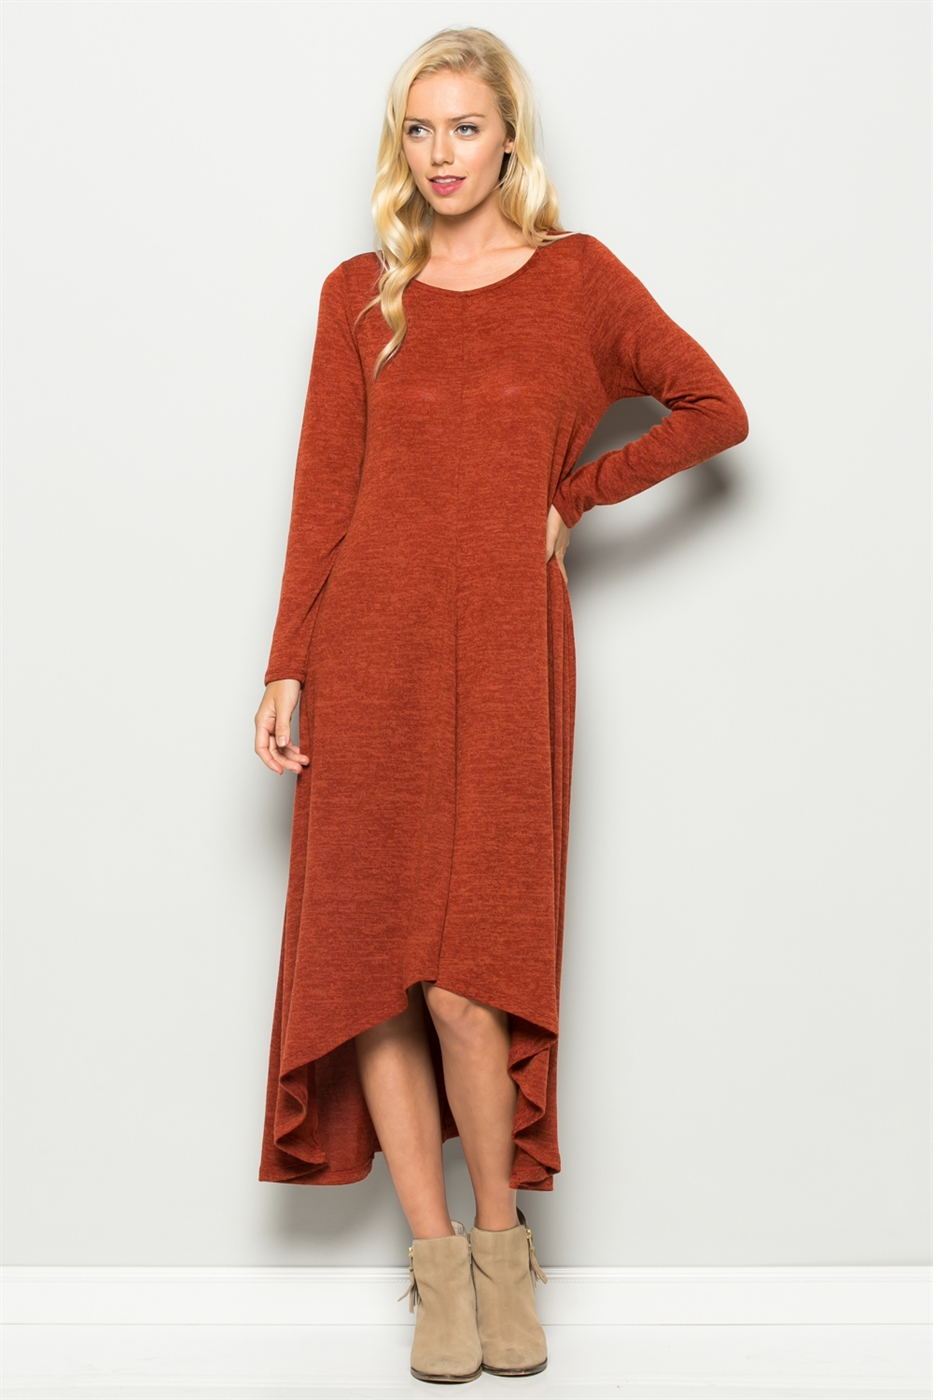 LONG SLEEVE KNIT DRESS - orangeshine.com